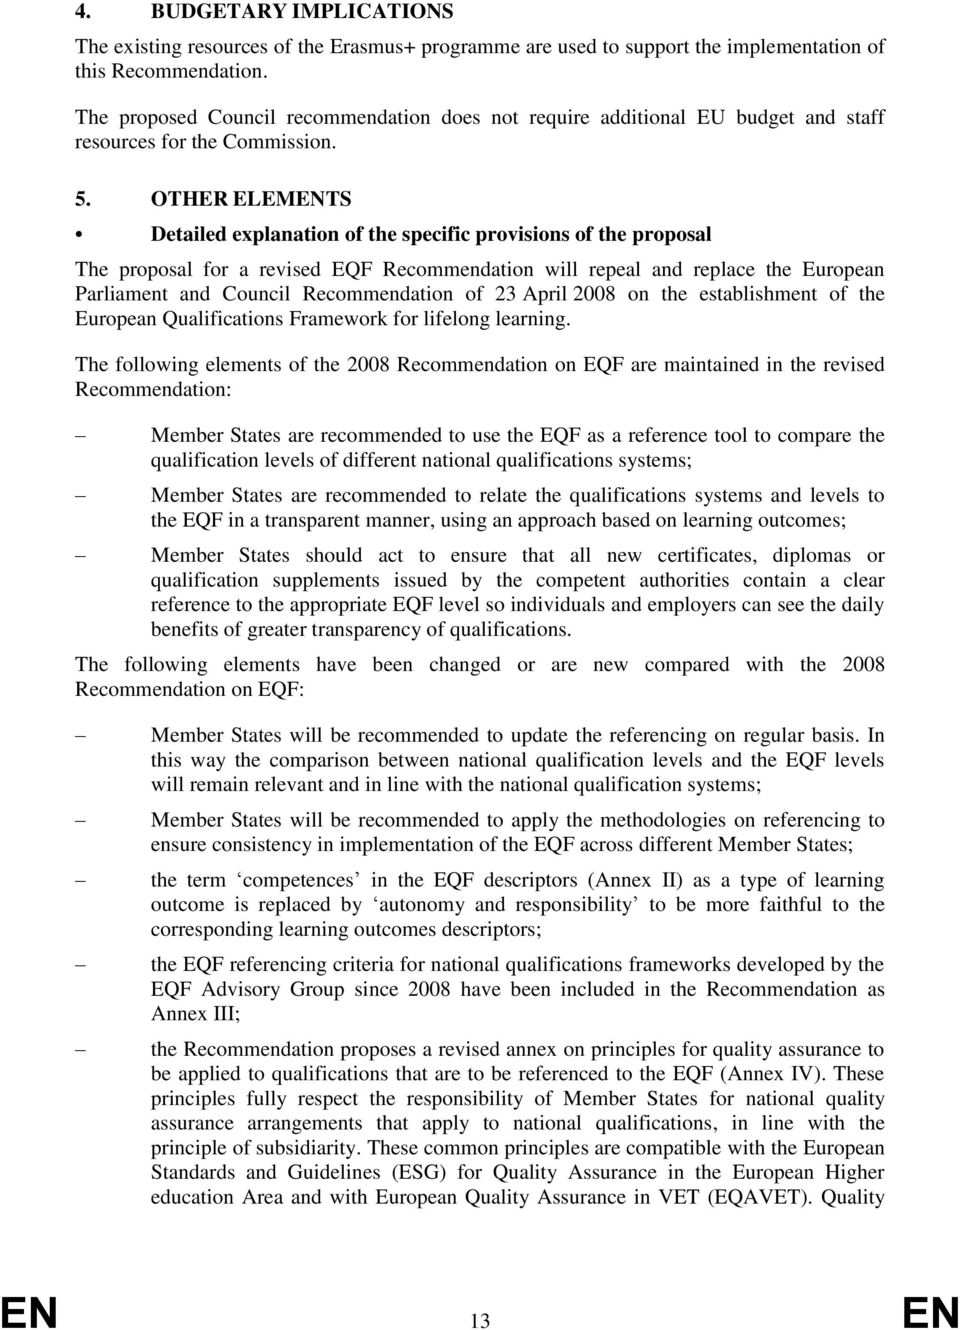 OTHER ELEMENTS Detailed explanation of the specific provisions of the proposal The proposal for a revised EQF Recommendation will repeal and replace the European Parliament and Council Recommendation